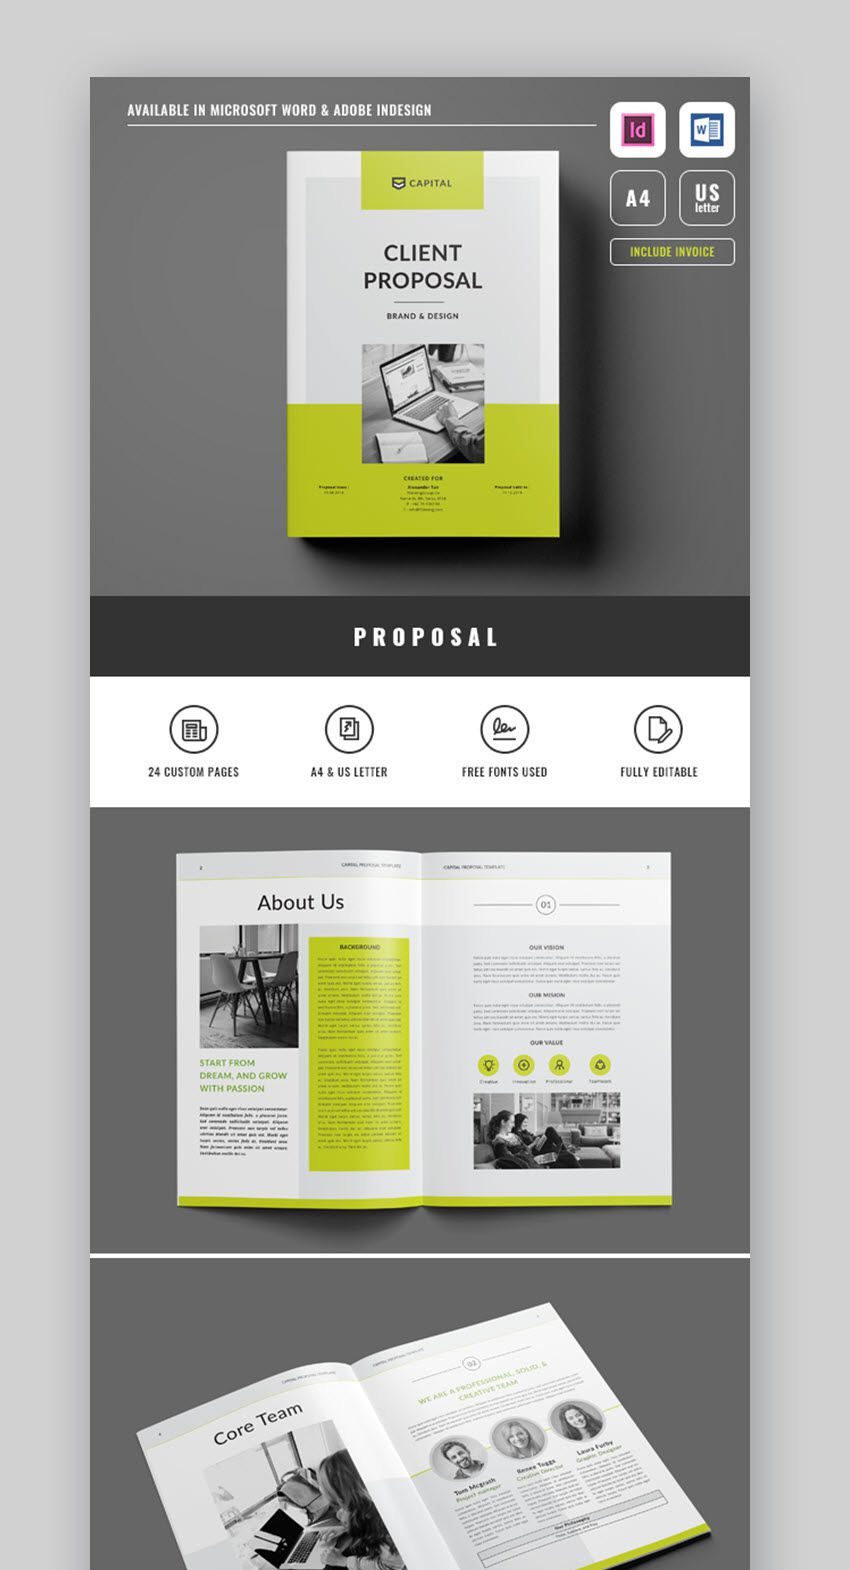 005 Singular Free Project Proposal Template High Resolution  Document Ppt PdfFull